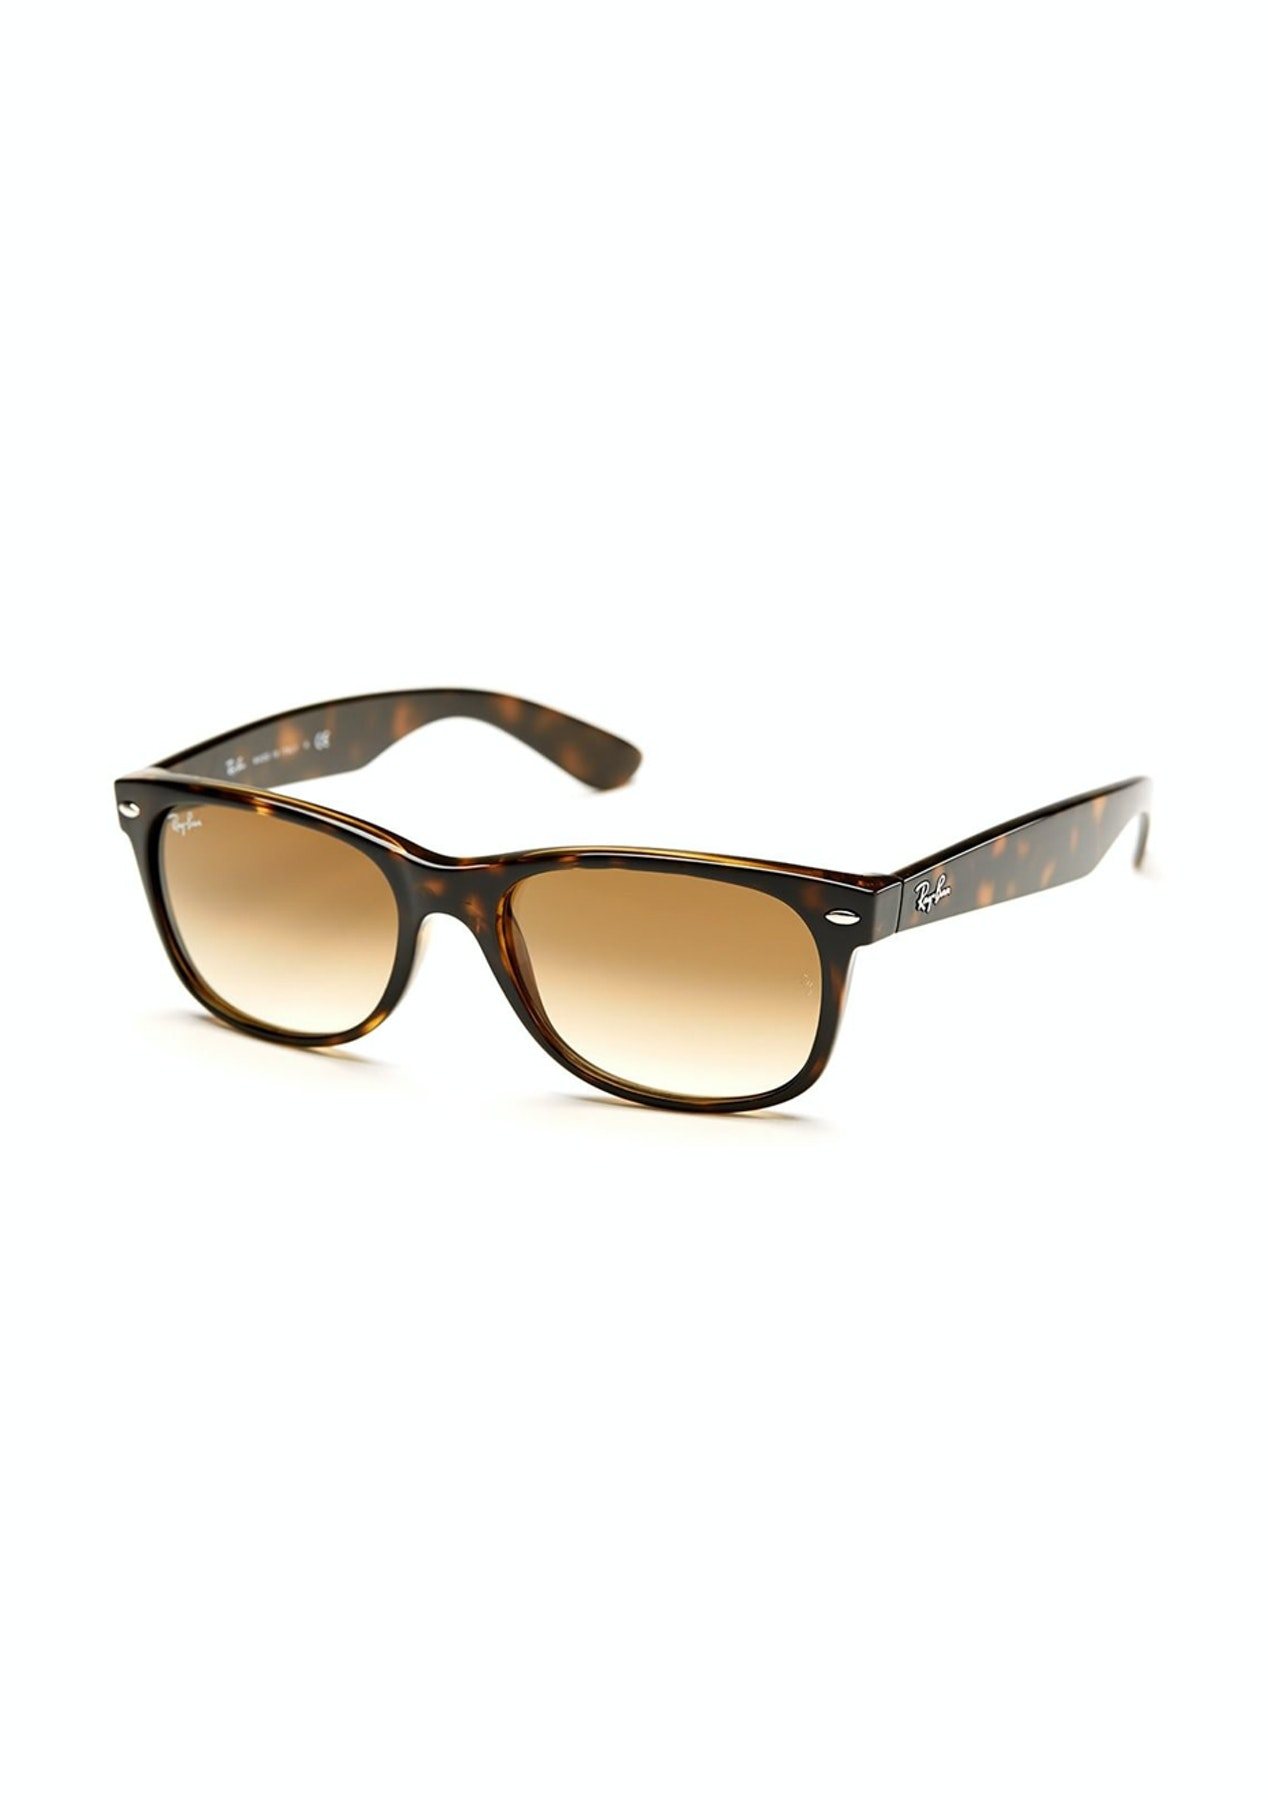 a3994a98f79 Ray-Ban - RB2132 710 51 55 - NEW WAYFARER CLASSIC Tort - Last Ones  Saben    More - Onceit